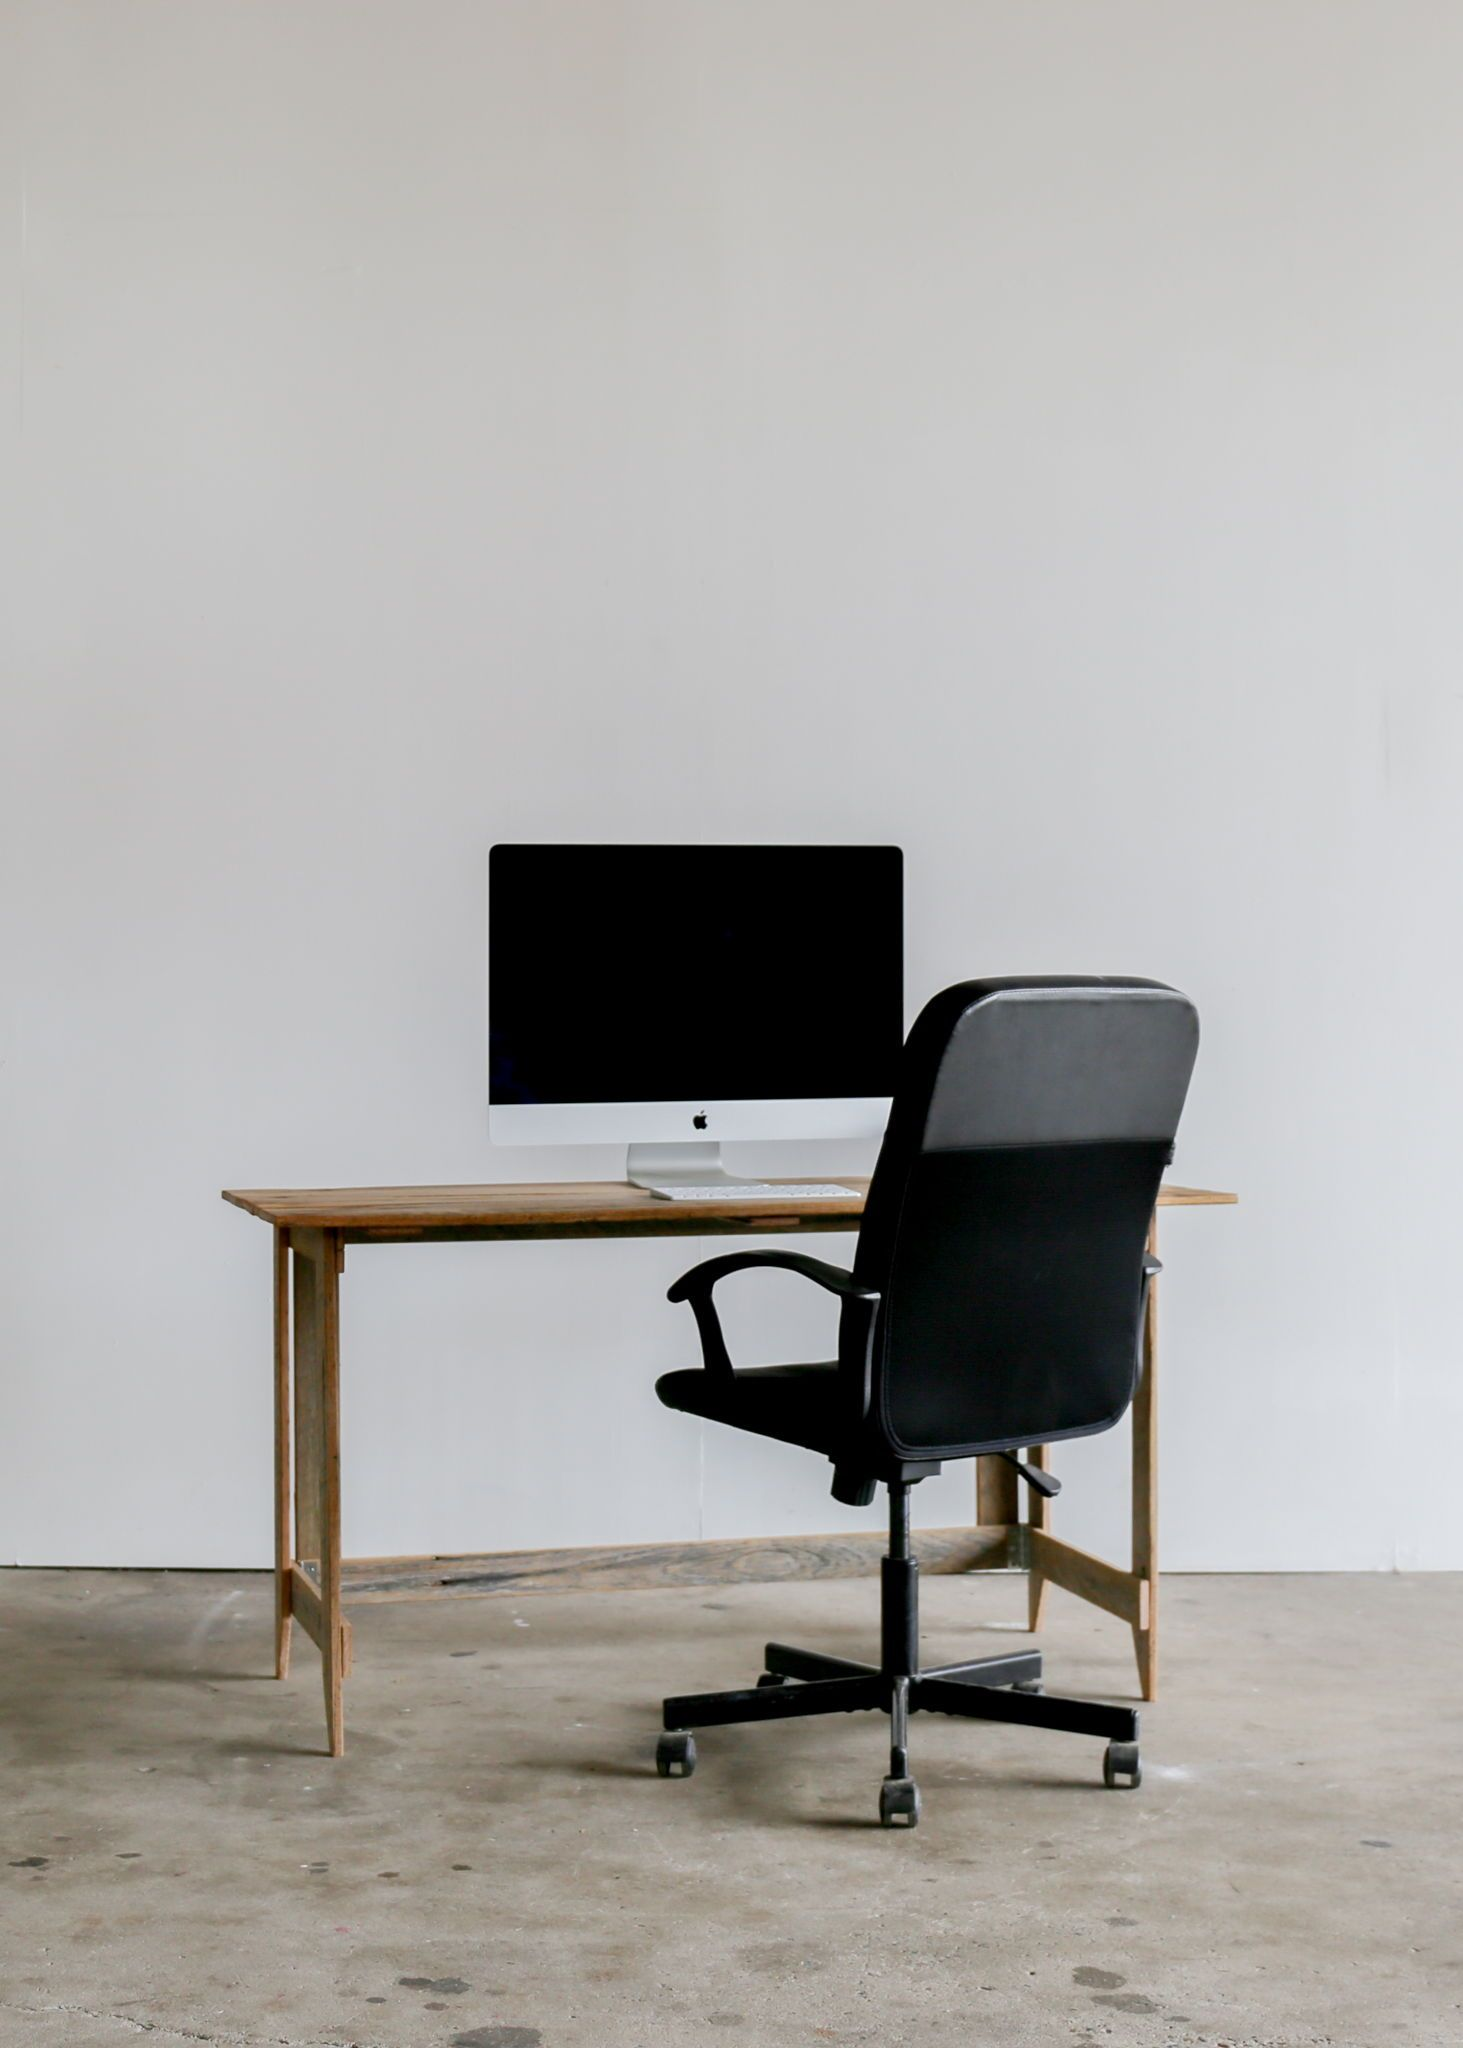 Recycled Timber Flat Pack Desk in 2020 Furniture, Timber